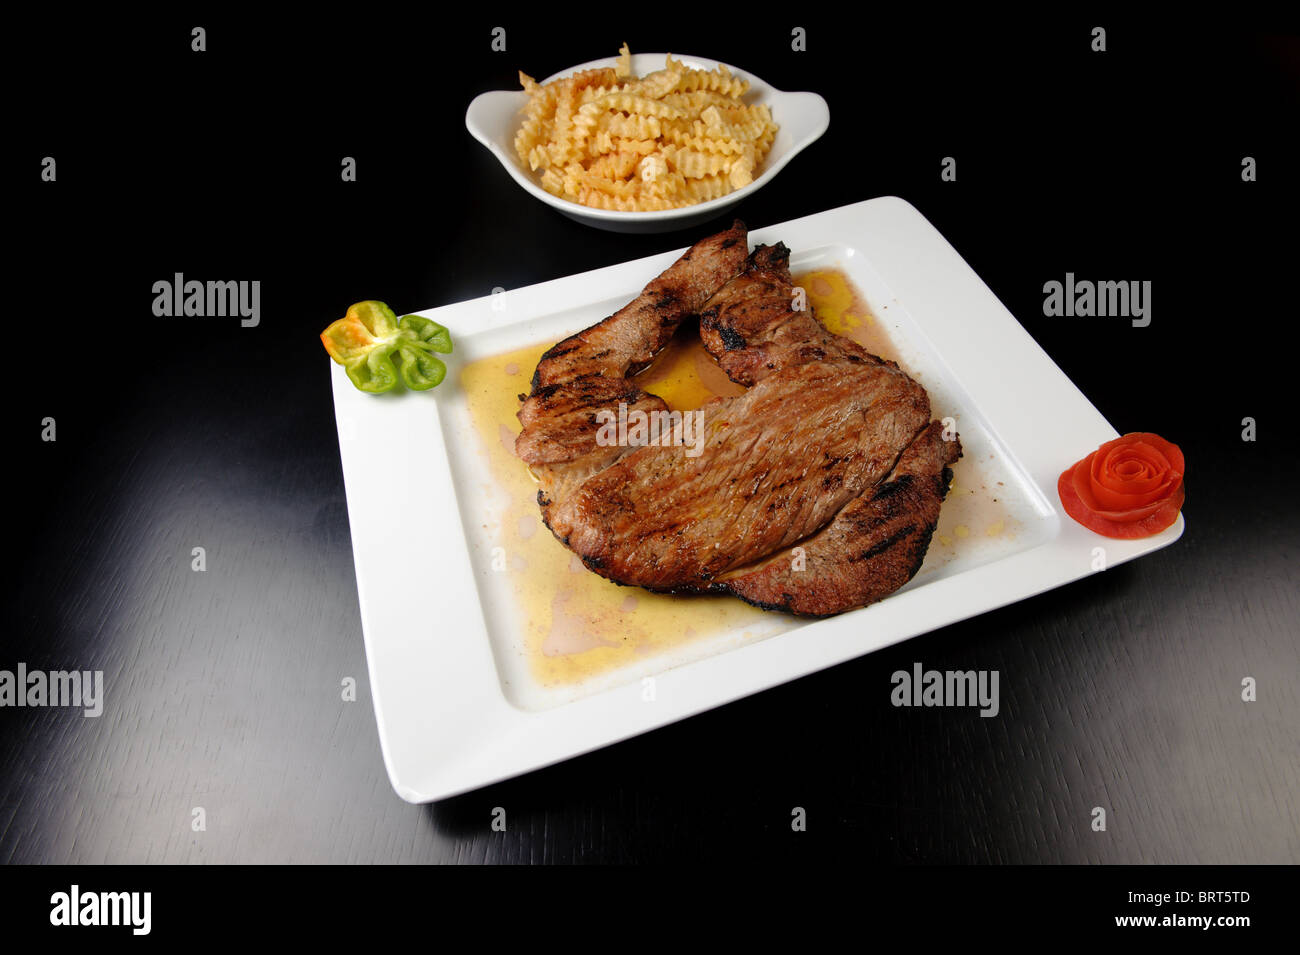 Grilled steak with french fries - Stock Image